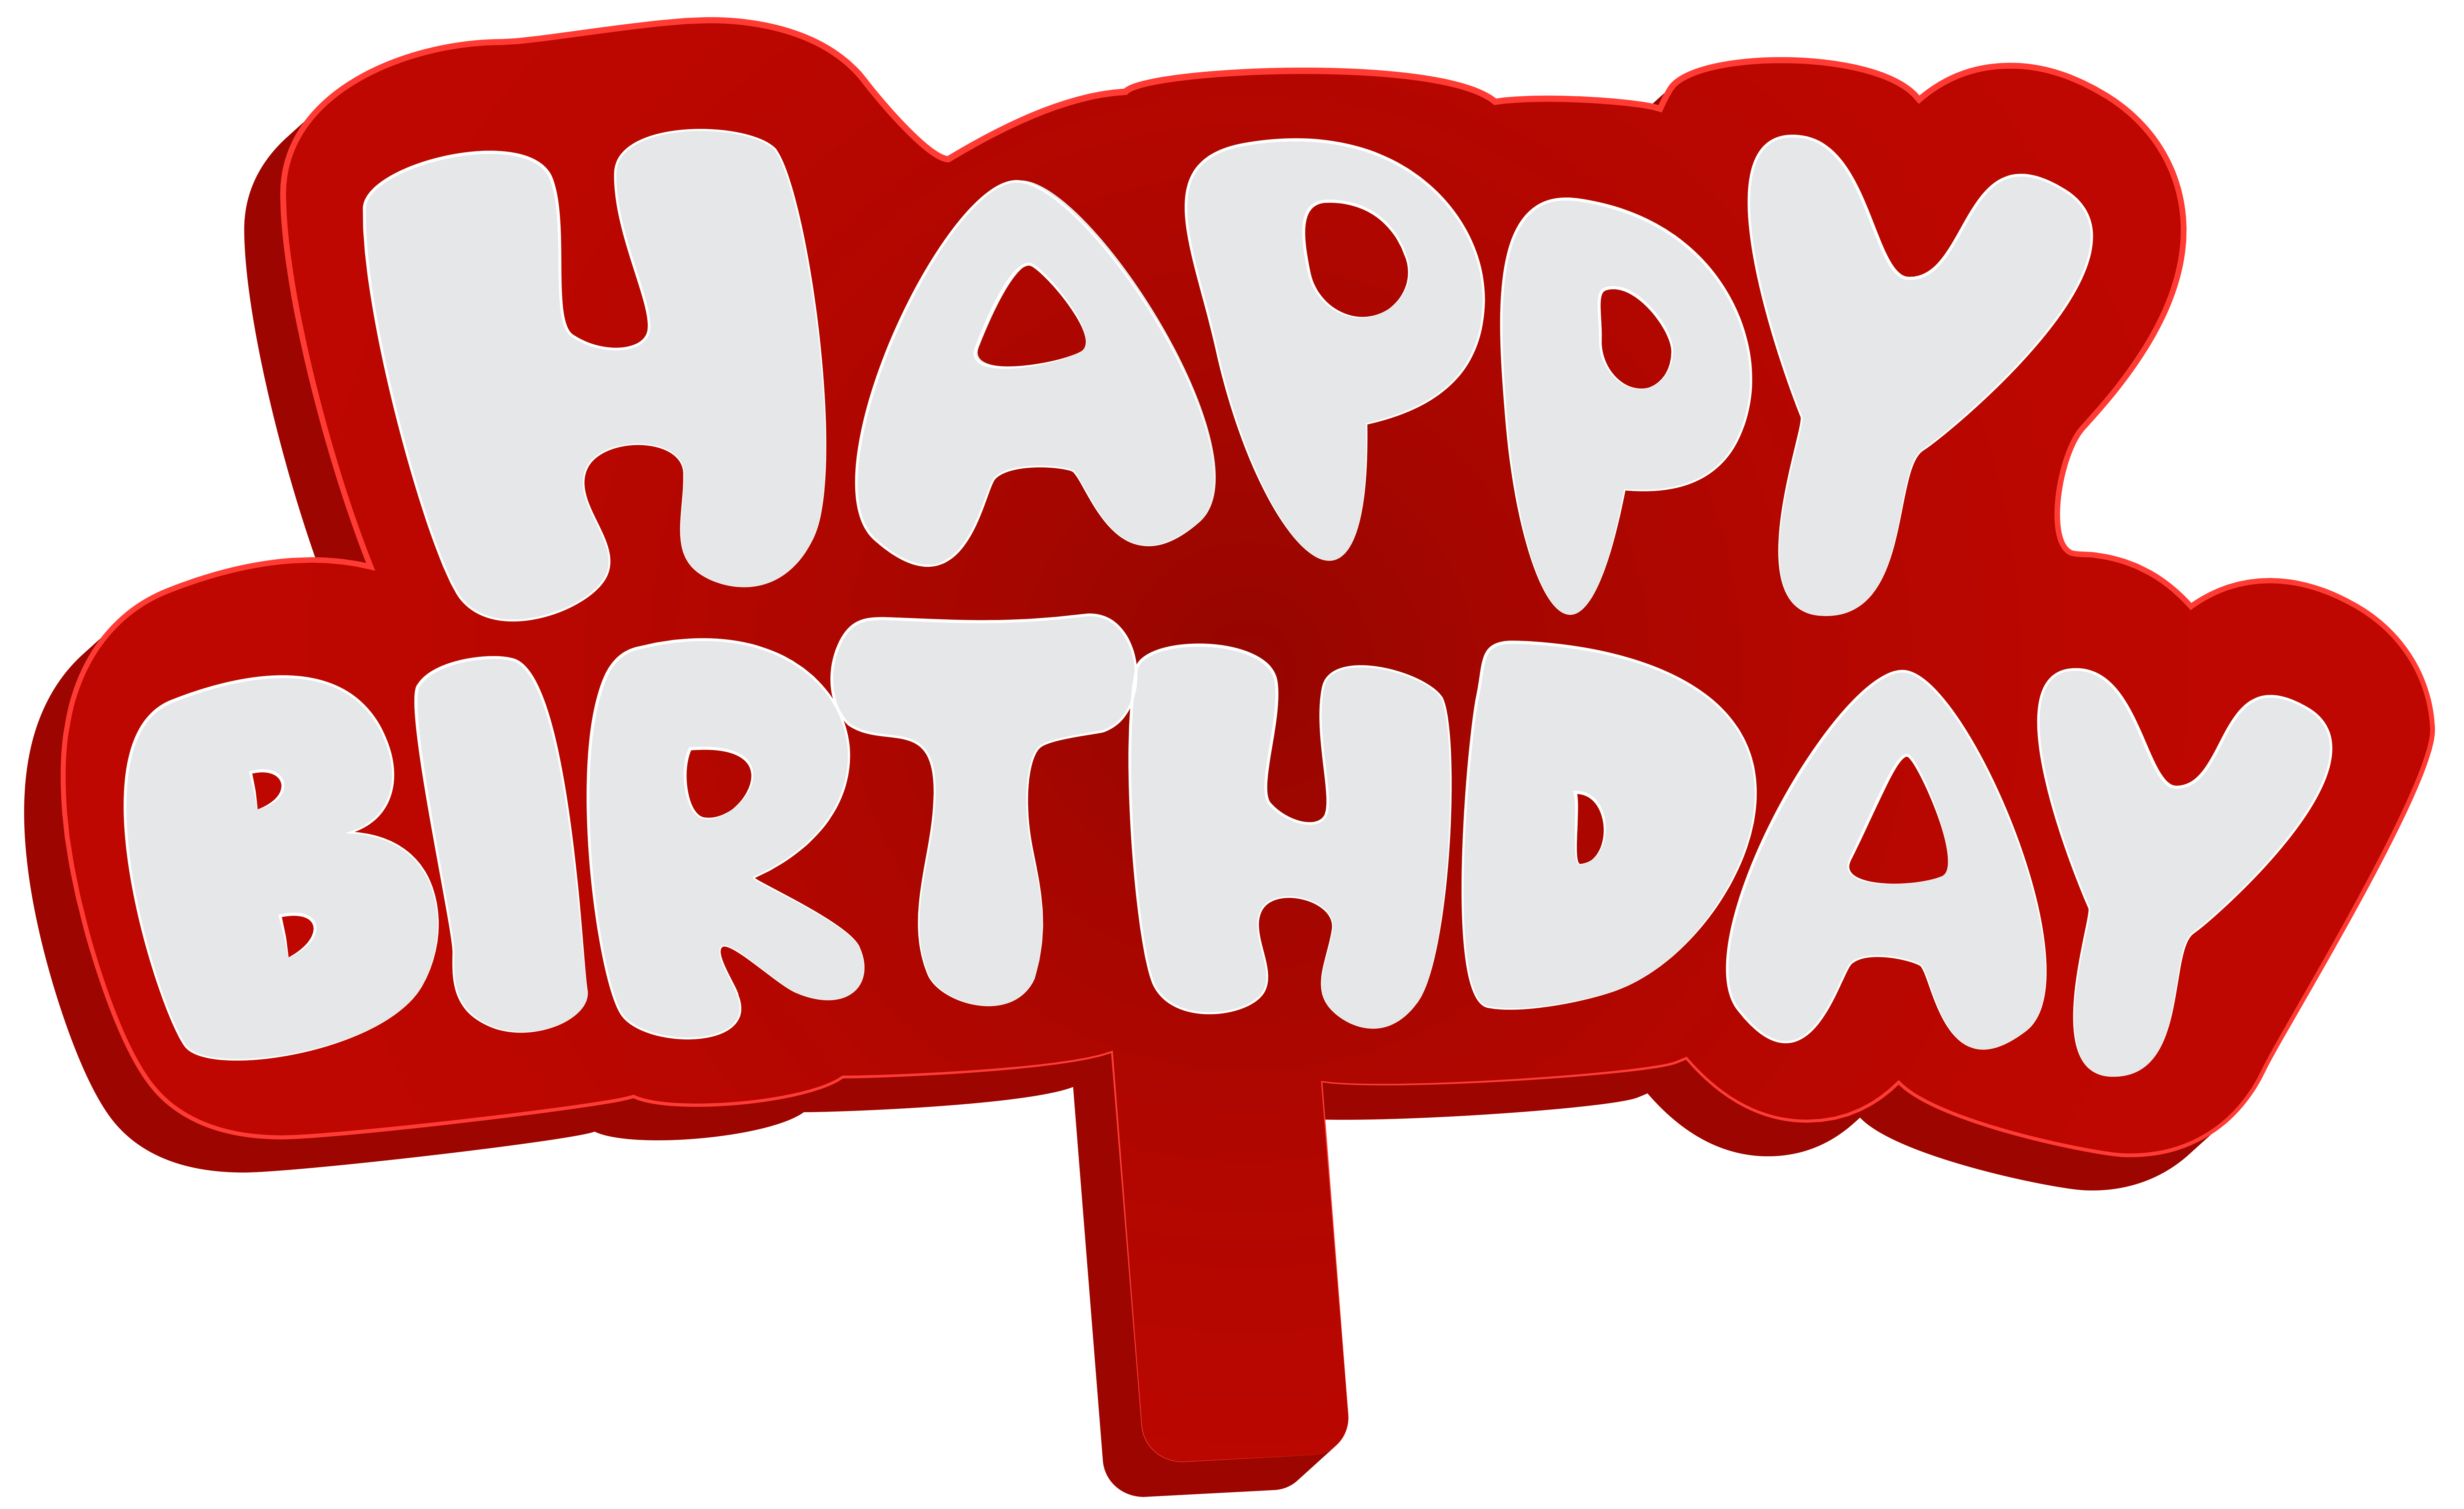 Images free download. Happy birthday to me png svg